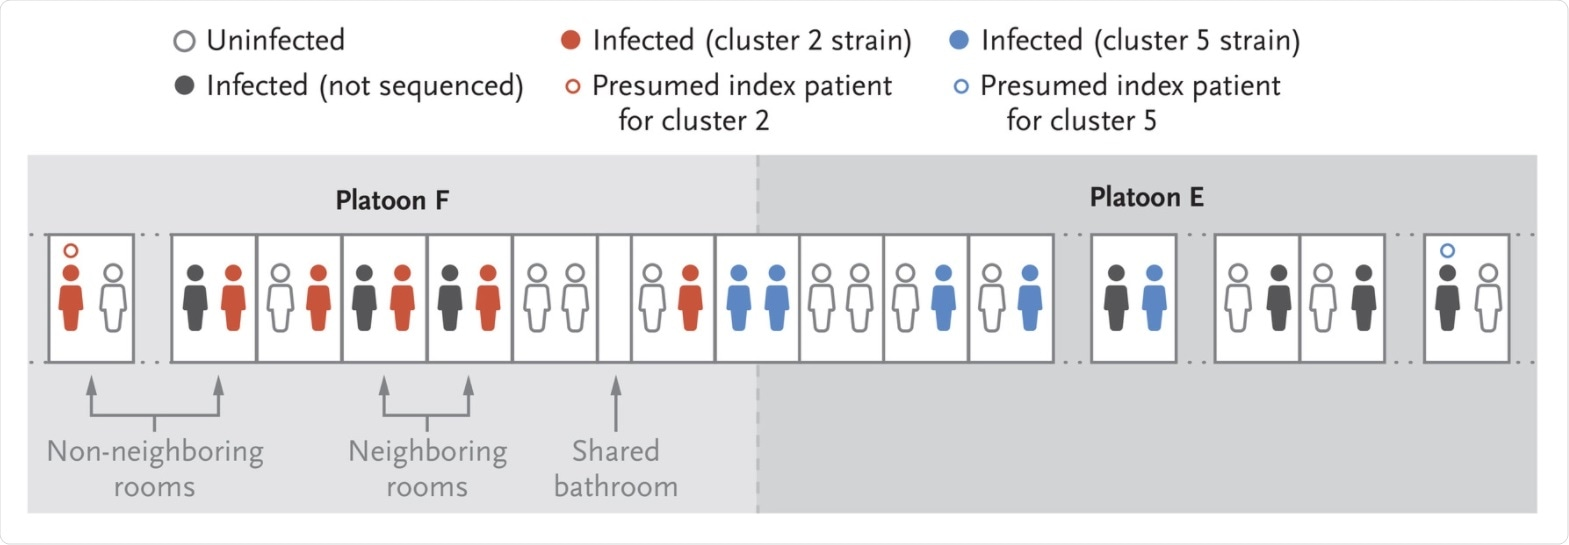 Local Transmission of SARS-CoV-2 during Quarantine. Participants who were associated with the two largest transmission clusters (clusters 2 and 5) were identified by means of sequencing and were either roommates or members of the same platoons, which indicates that double-occupancy rooming and shared platoon membership were important contributors to transmission. Other infected members of these platoons whose samples were not sequenced may have been infected with the same cluster strains. One recruit in each platoon was found to be infected at the beginning of quarantine and represents the potential source of each cluster strain.